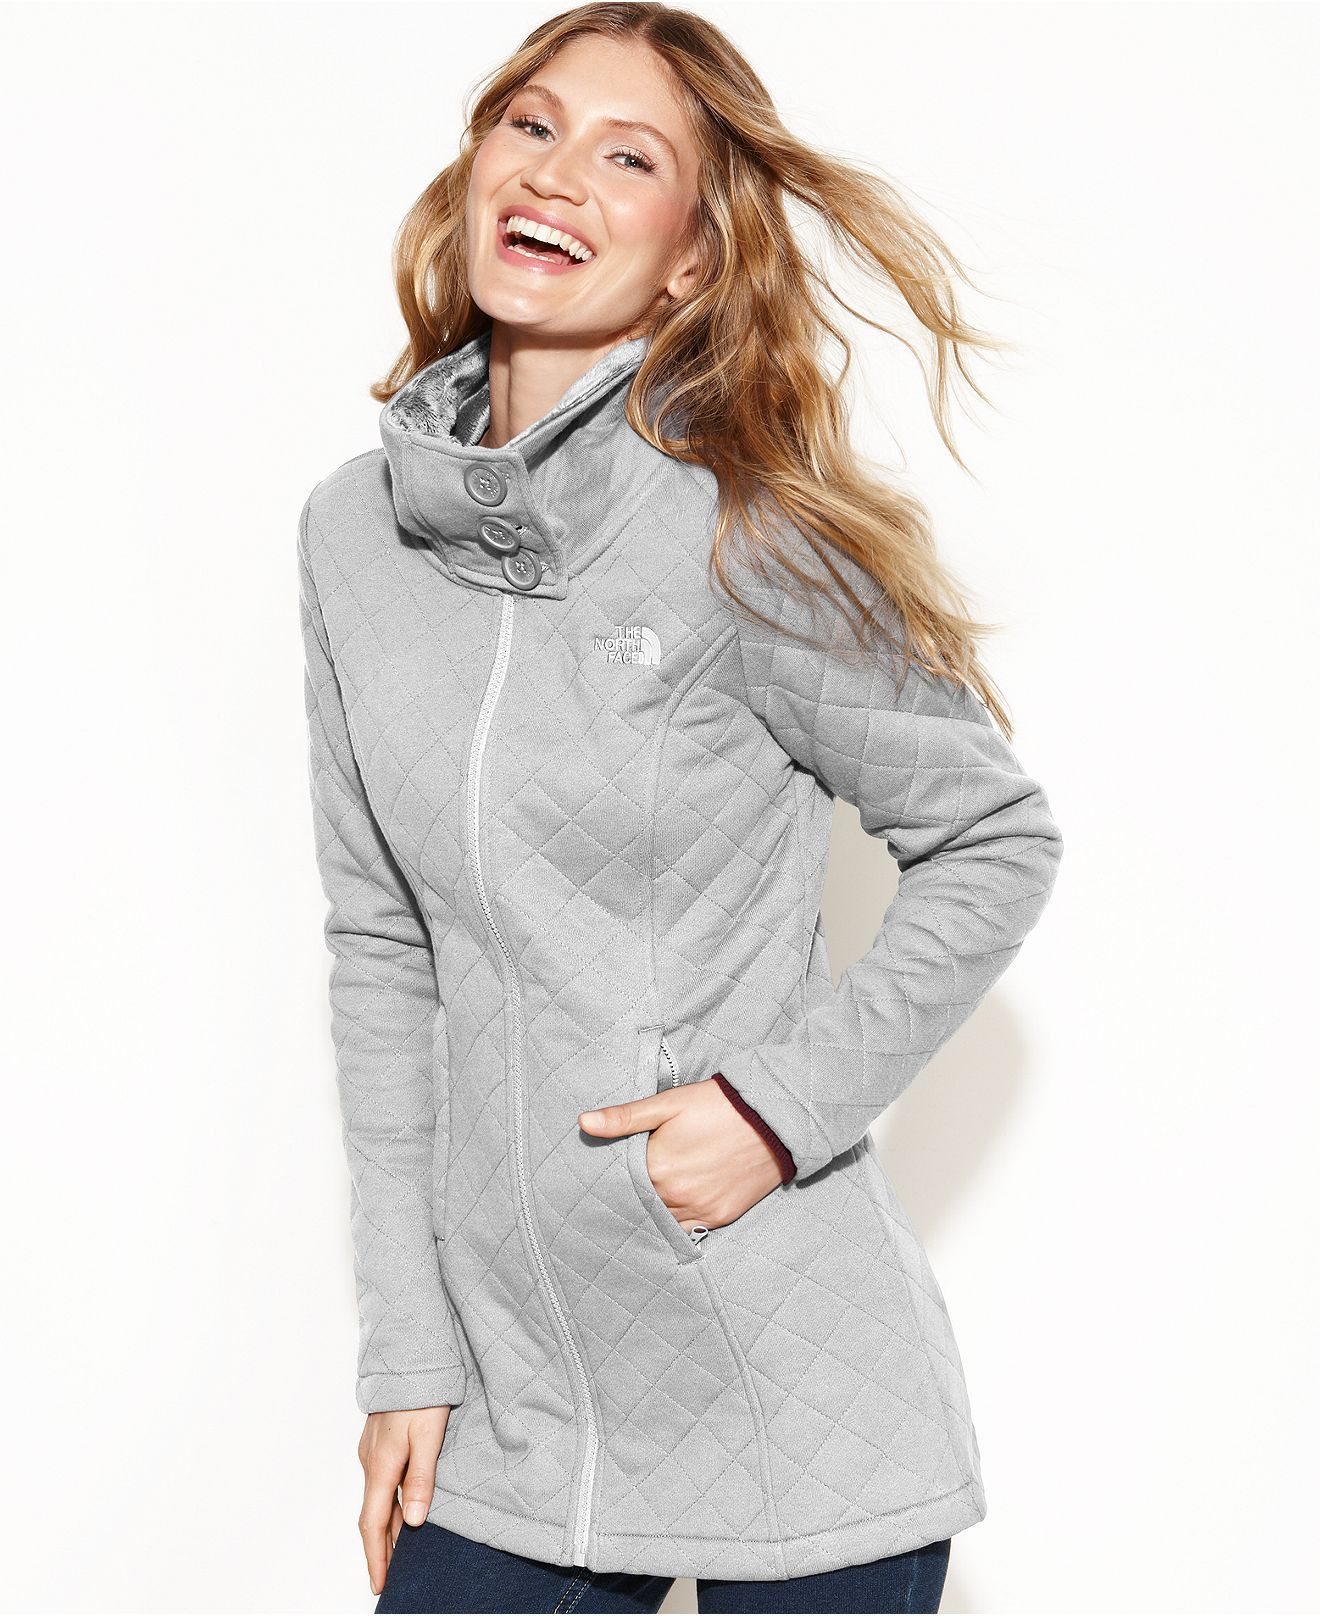 The North Face Jacket Caroluna Quilted Juniors Jackets